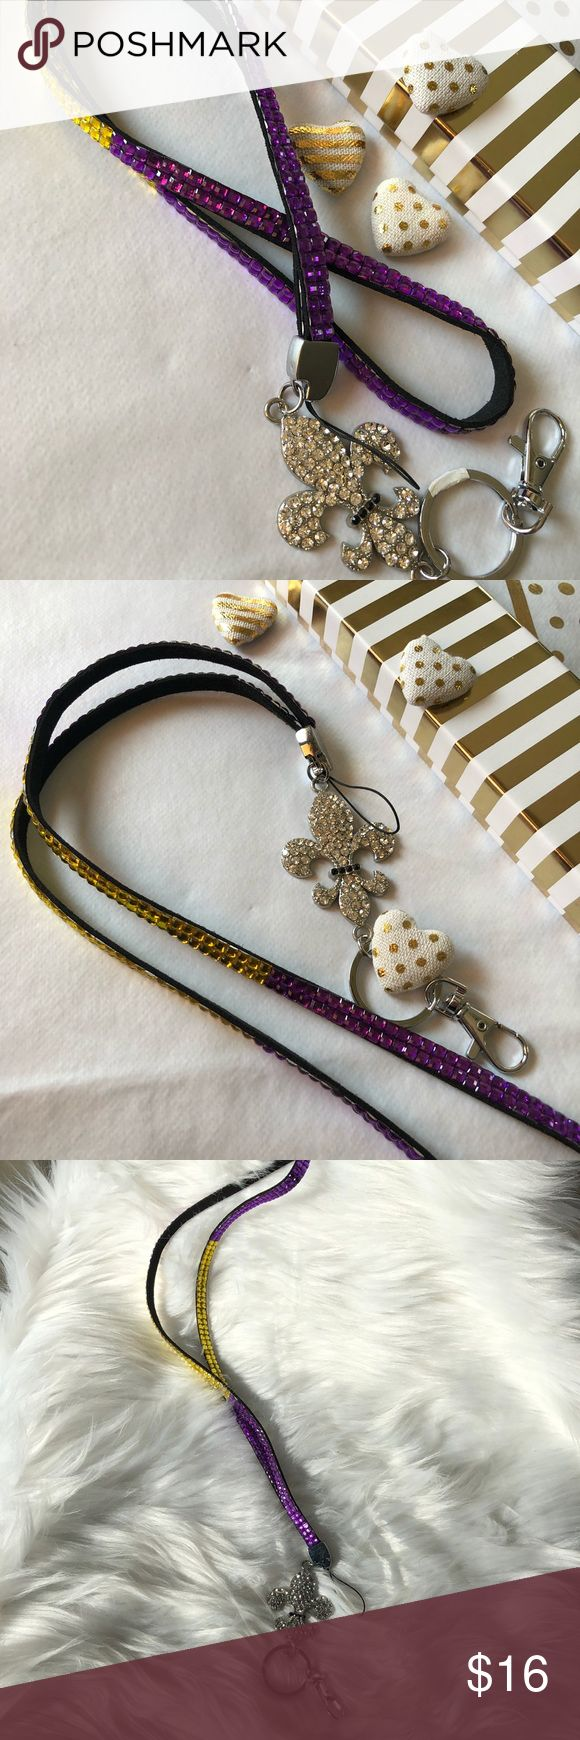 Lanyard New Orleans purple & yellow bling Lanyard New Orleans purple & yellow bling with silver sparkle bling NEW Accessories